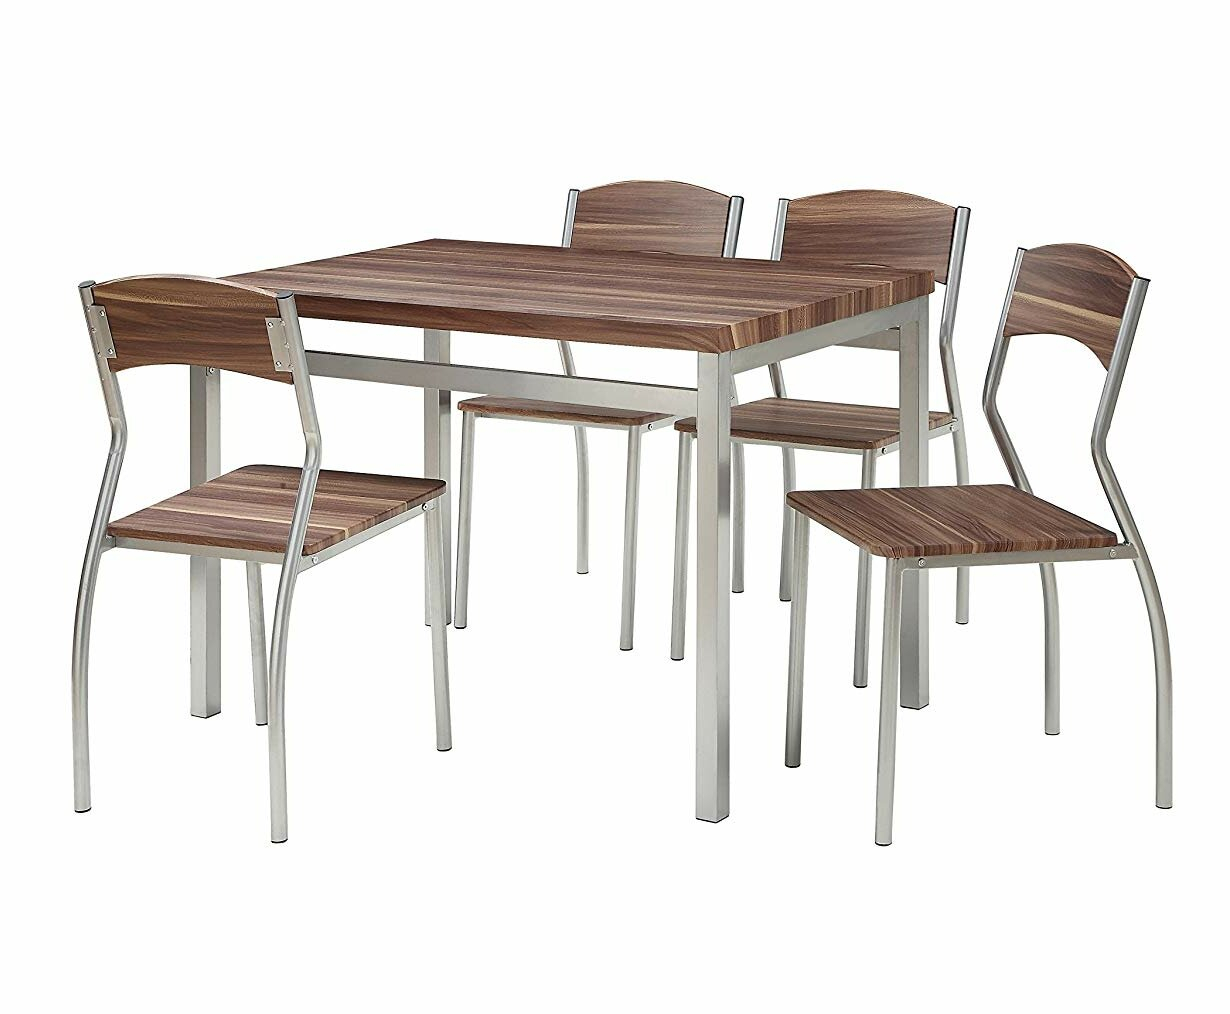 Kaelin 5 Piece Dining Set Pertaining To Best And Newest Wiggs 5 Piece Dining Sets (View 18 of 20)